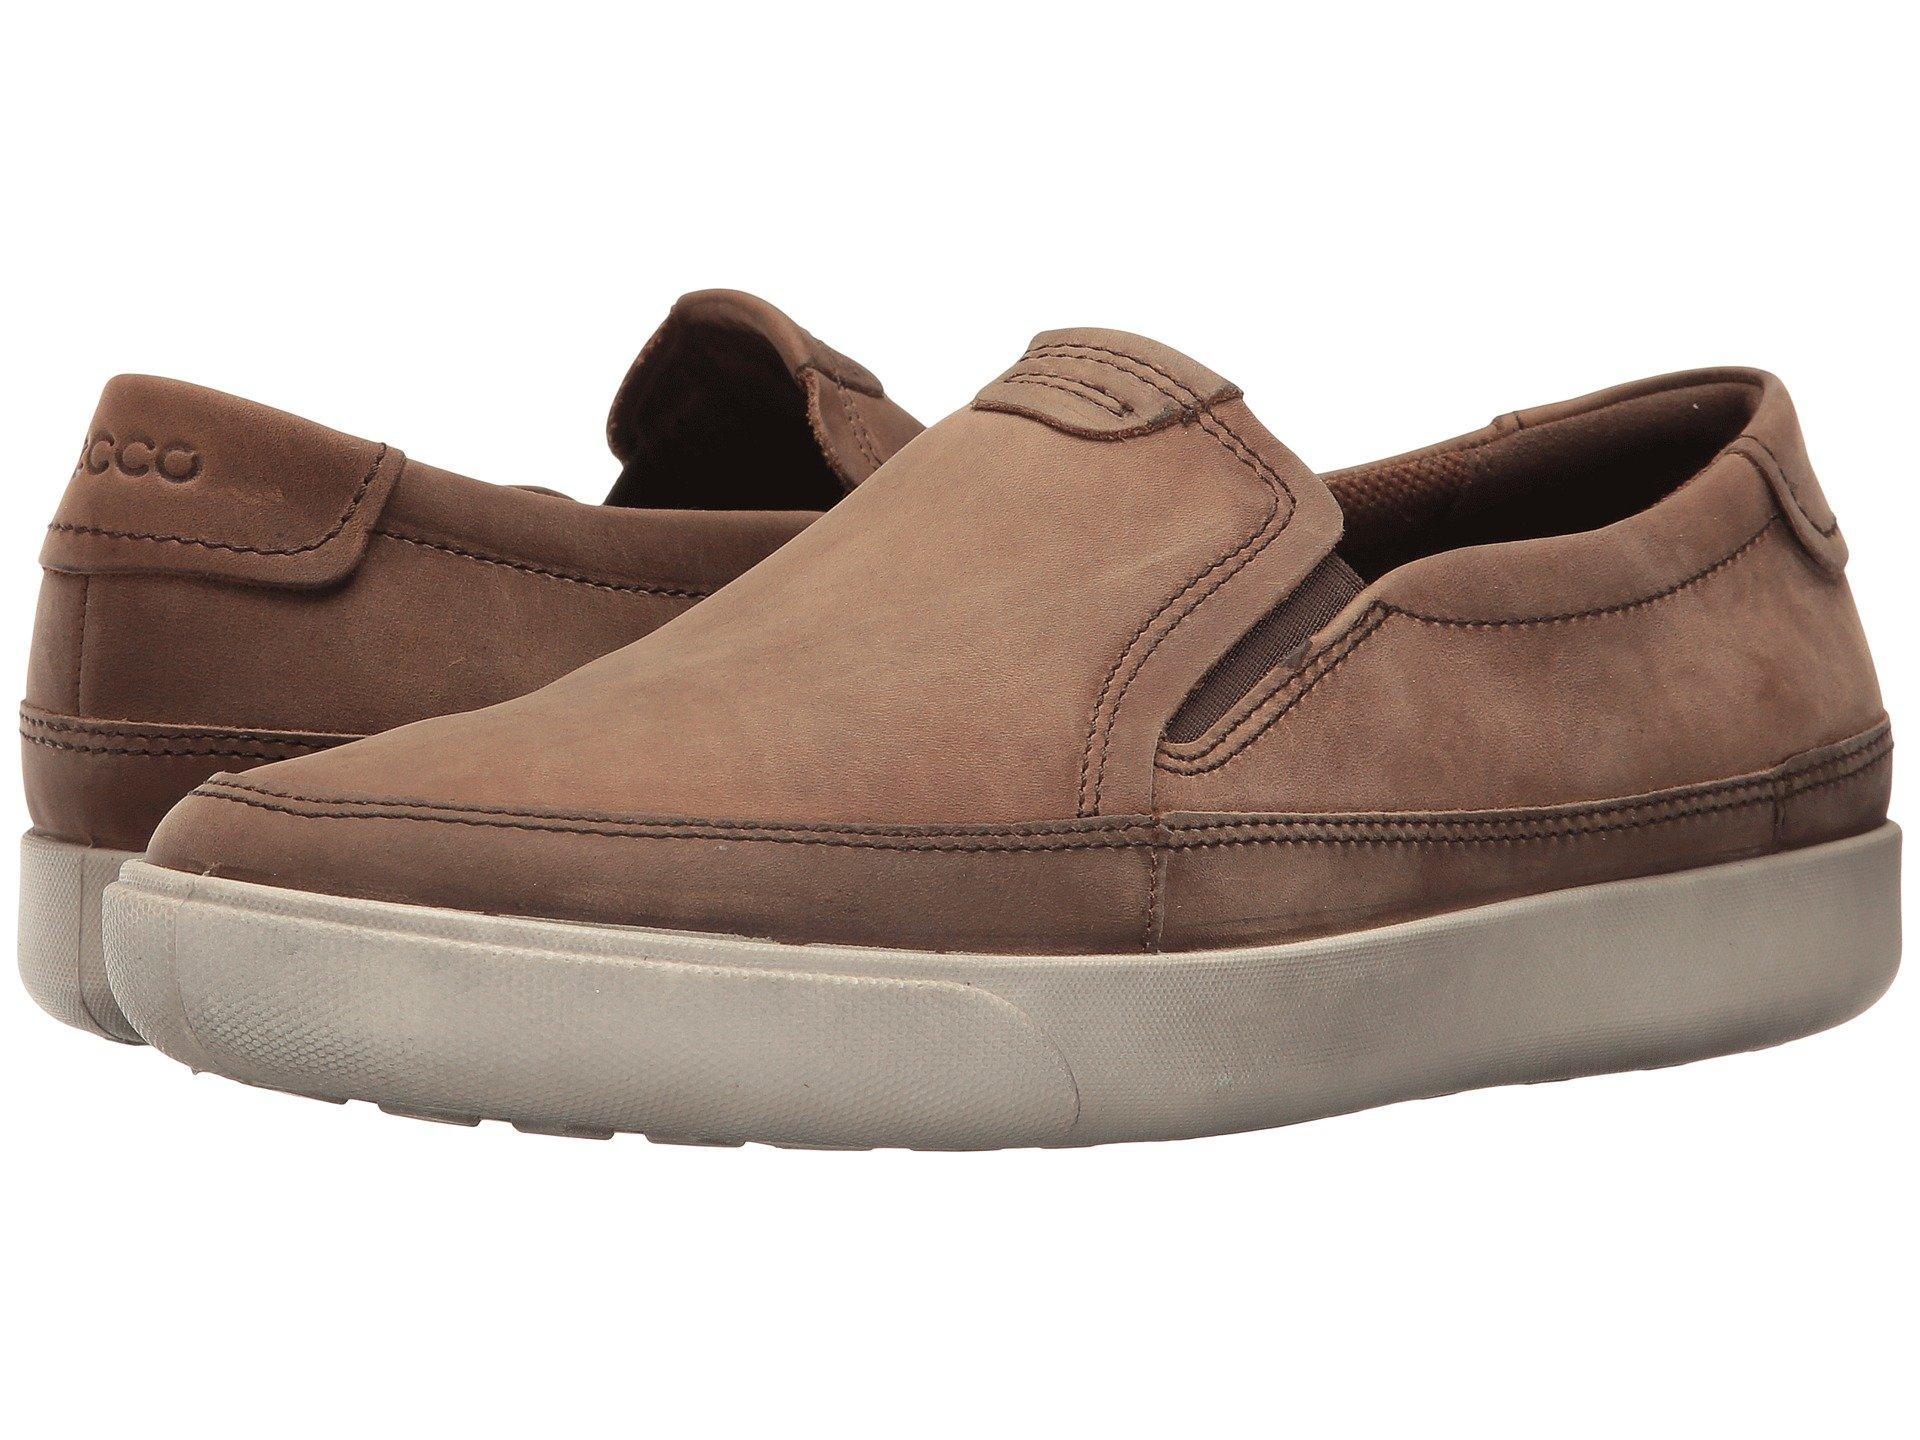 8a02352cf08a Lyst - Ecco Gary Slip-on in Brown for Men - Save 57%